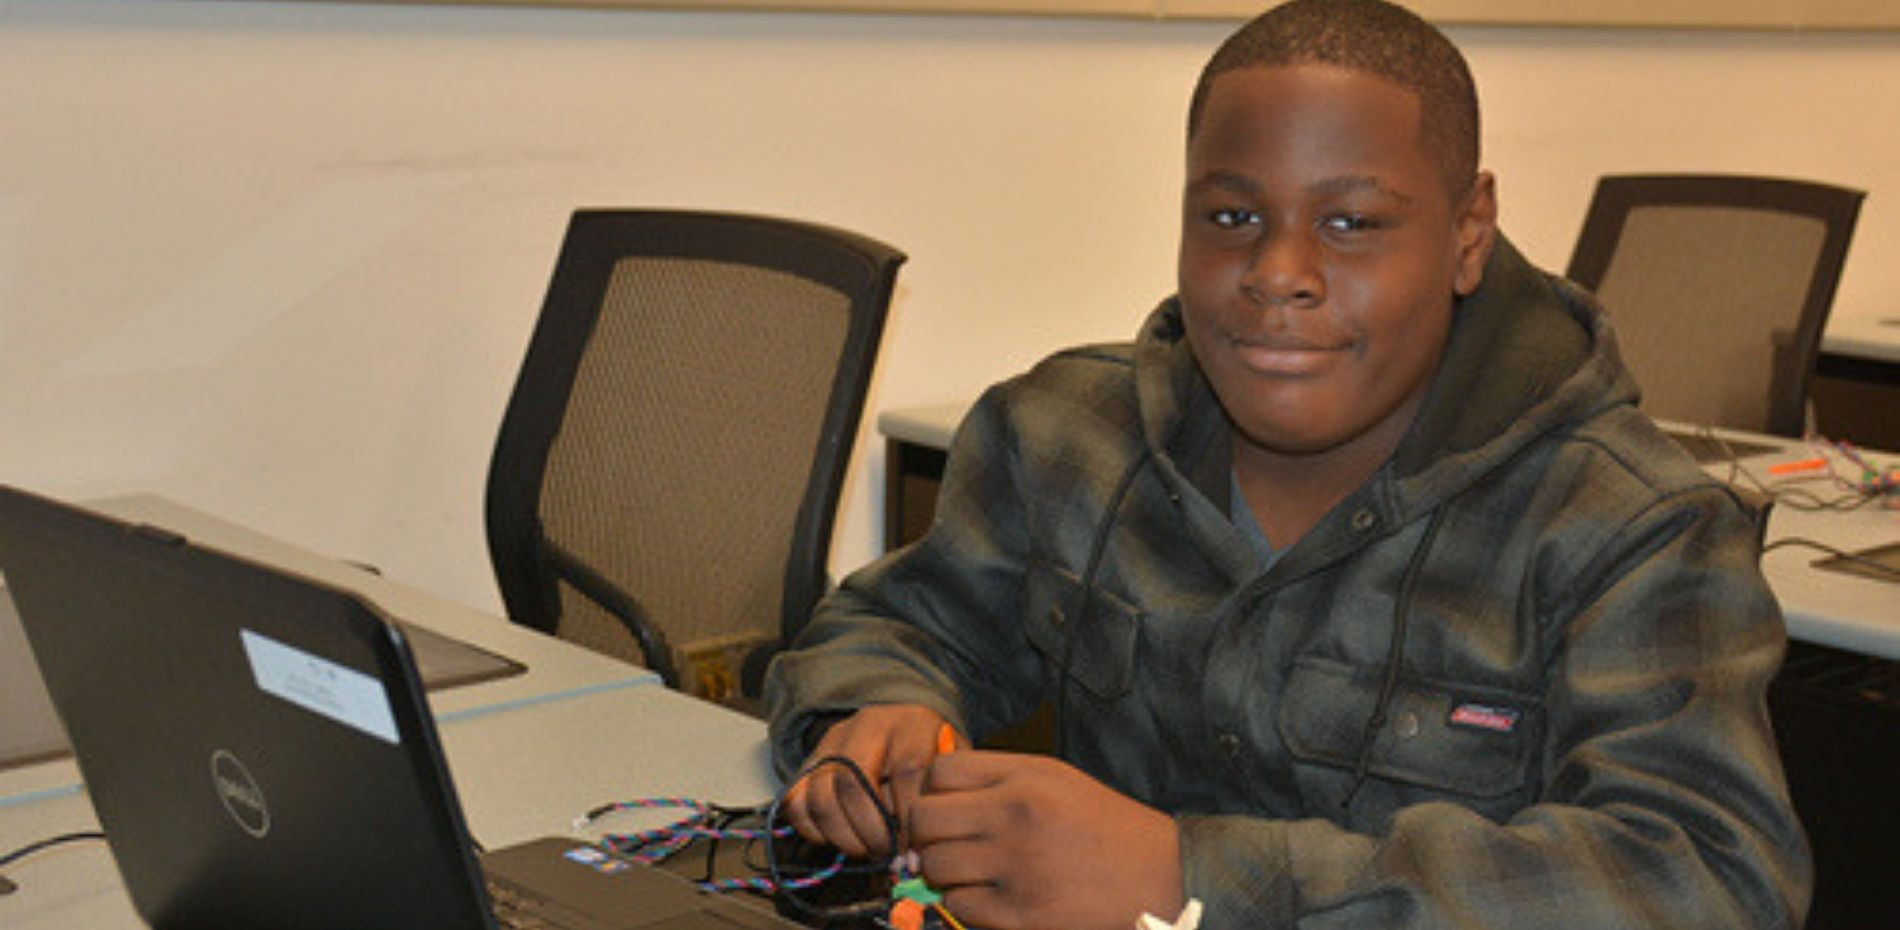 K-12 student working on robotic project